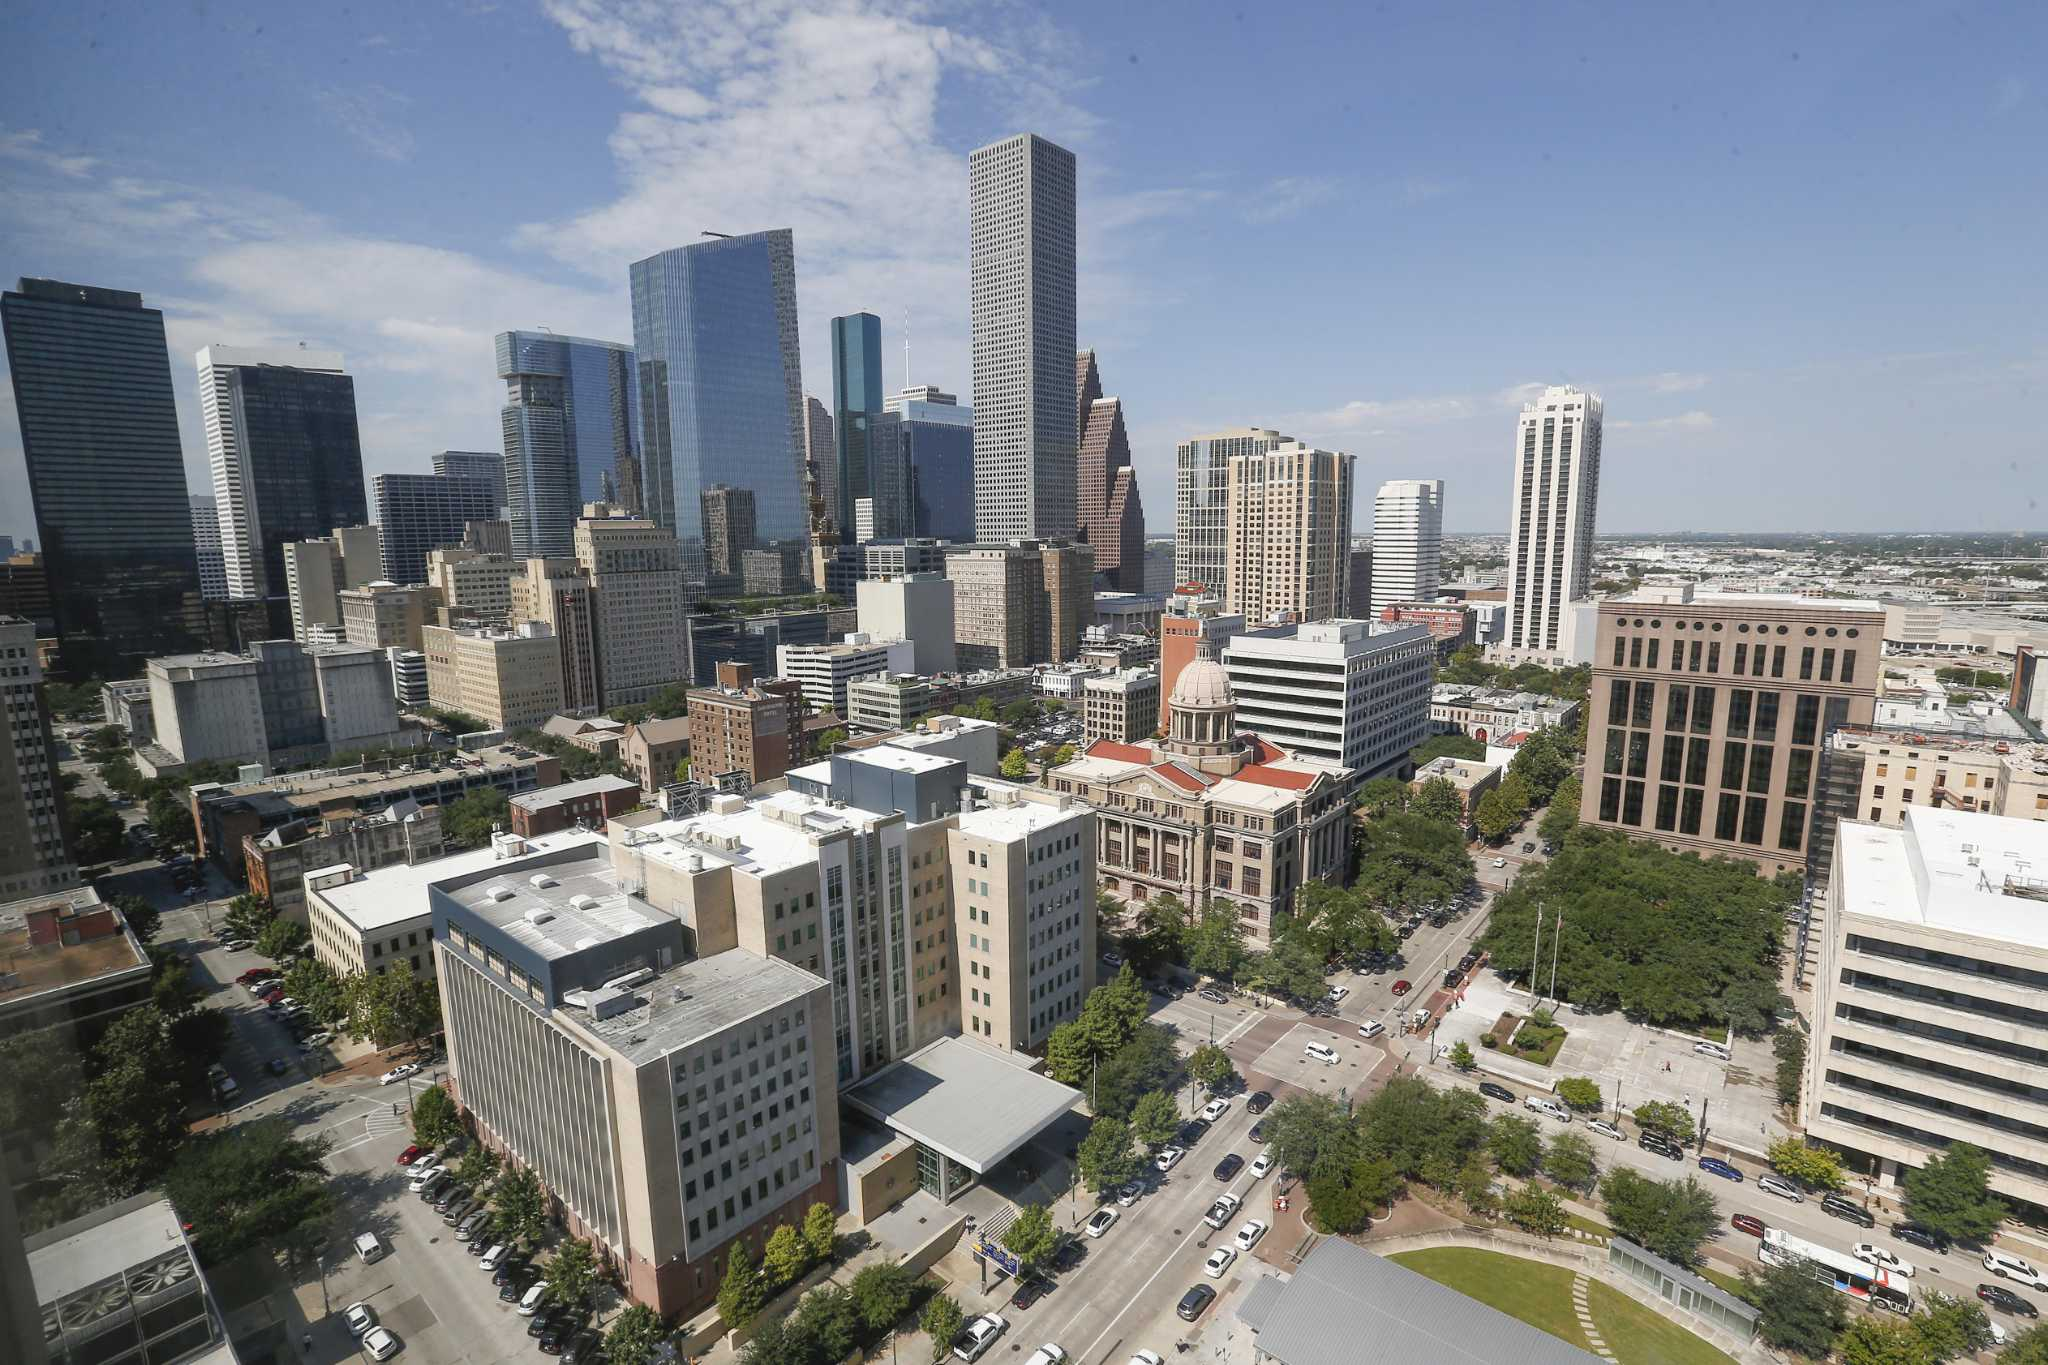 UT researcher: 20% of Houston may already have been infected with COVID